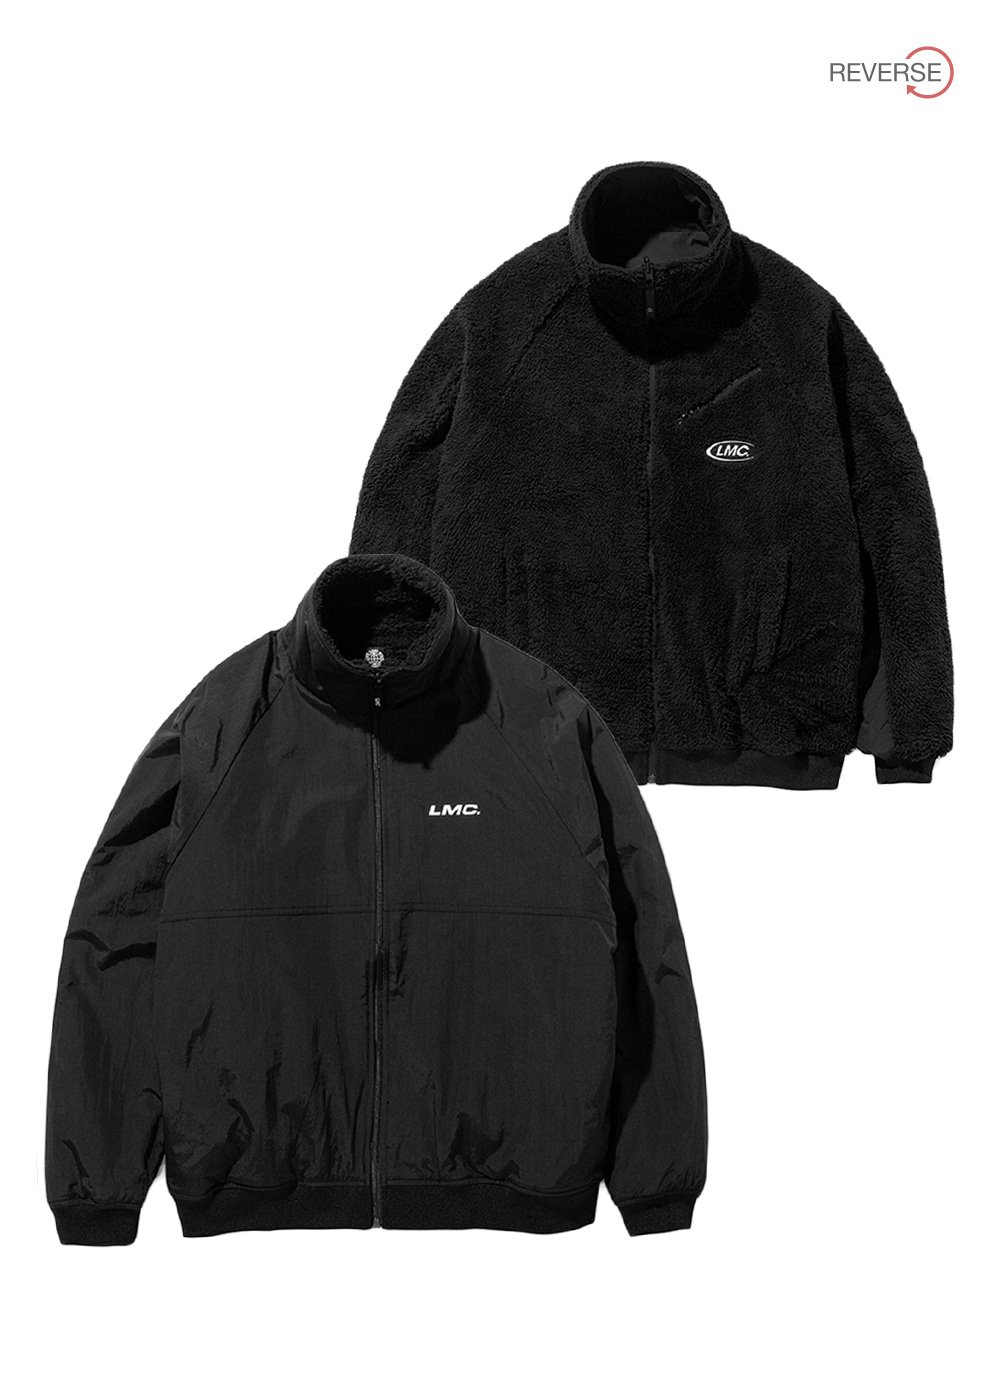 LMC SILKY FLEECE REVERSIBLE JACKET black